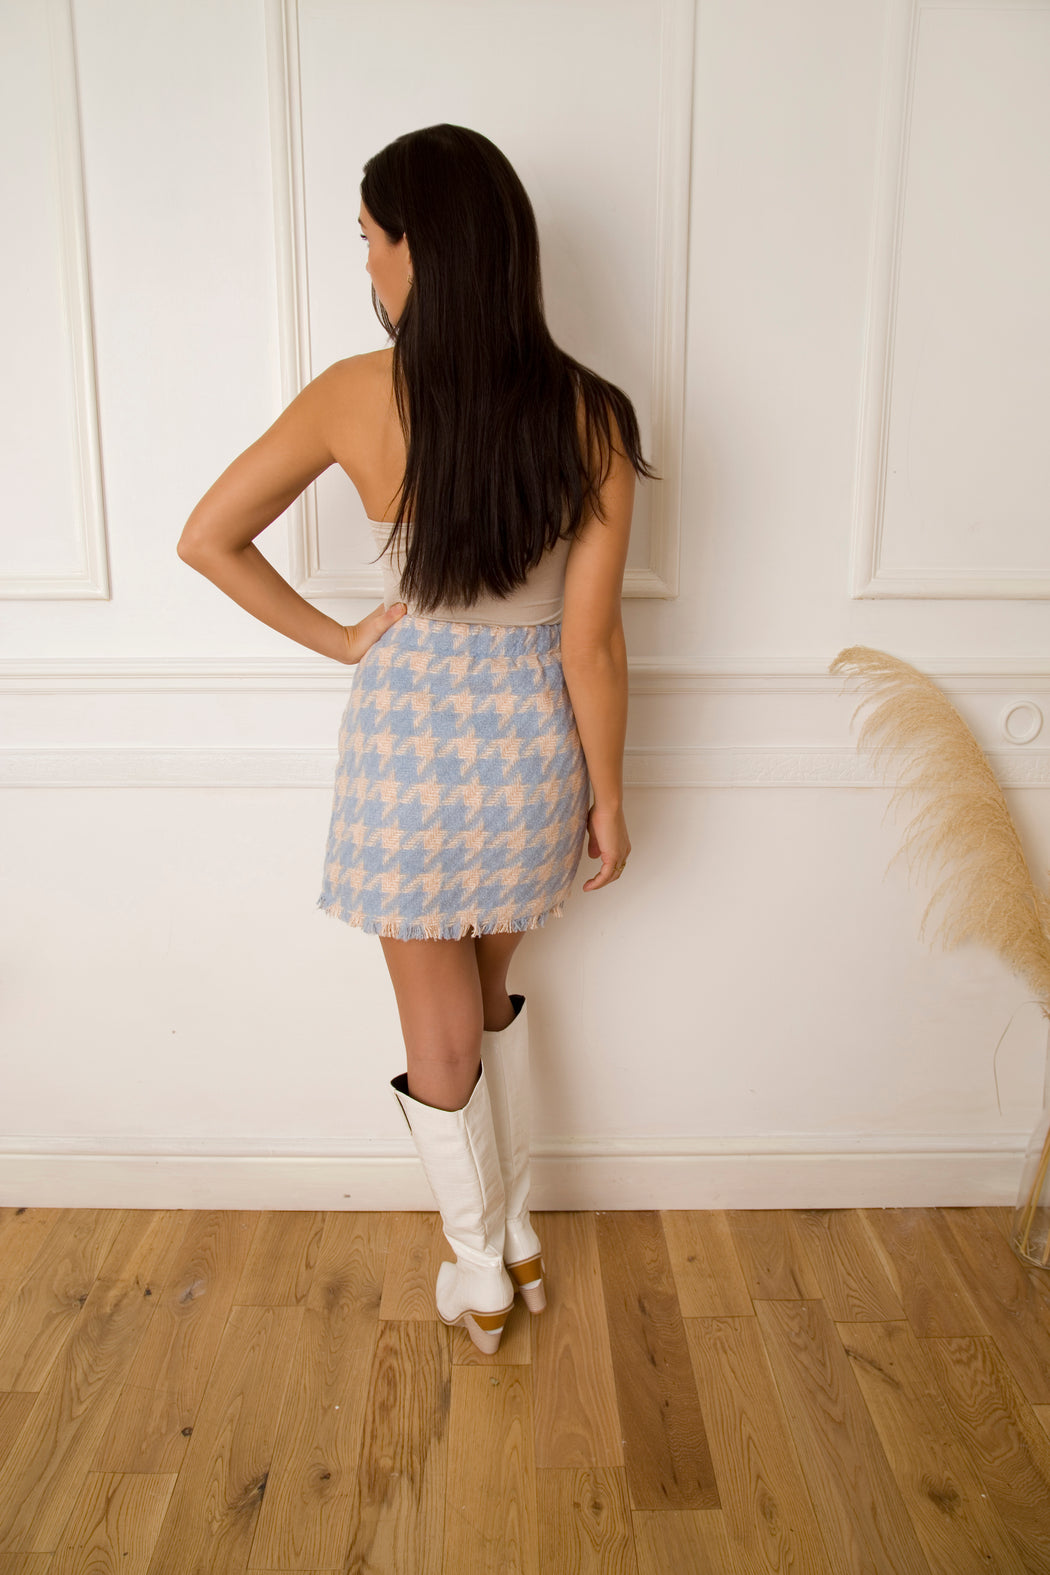 Cher Houndstooth Blue Skirt - Lavand Stories